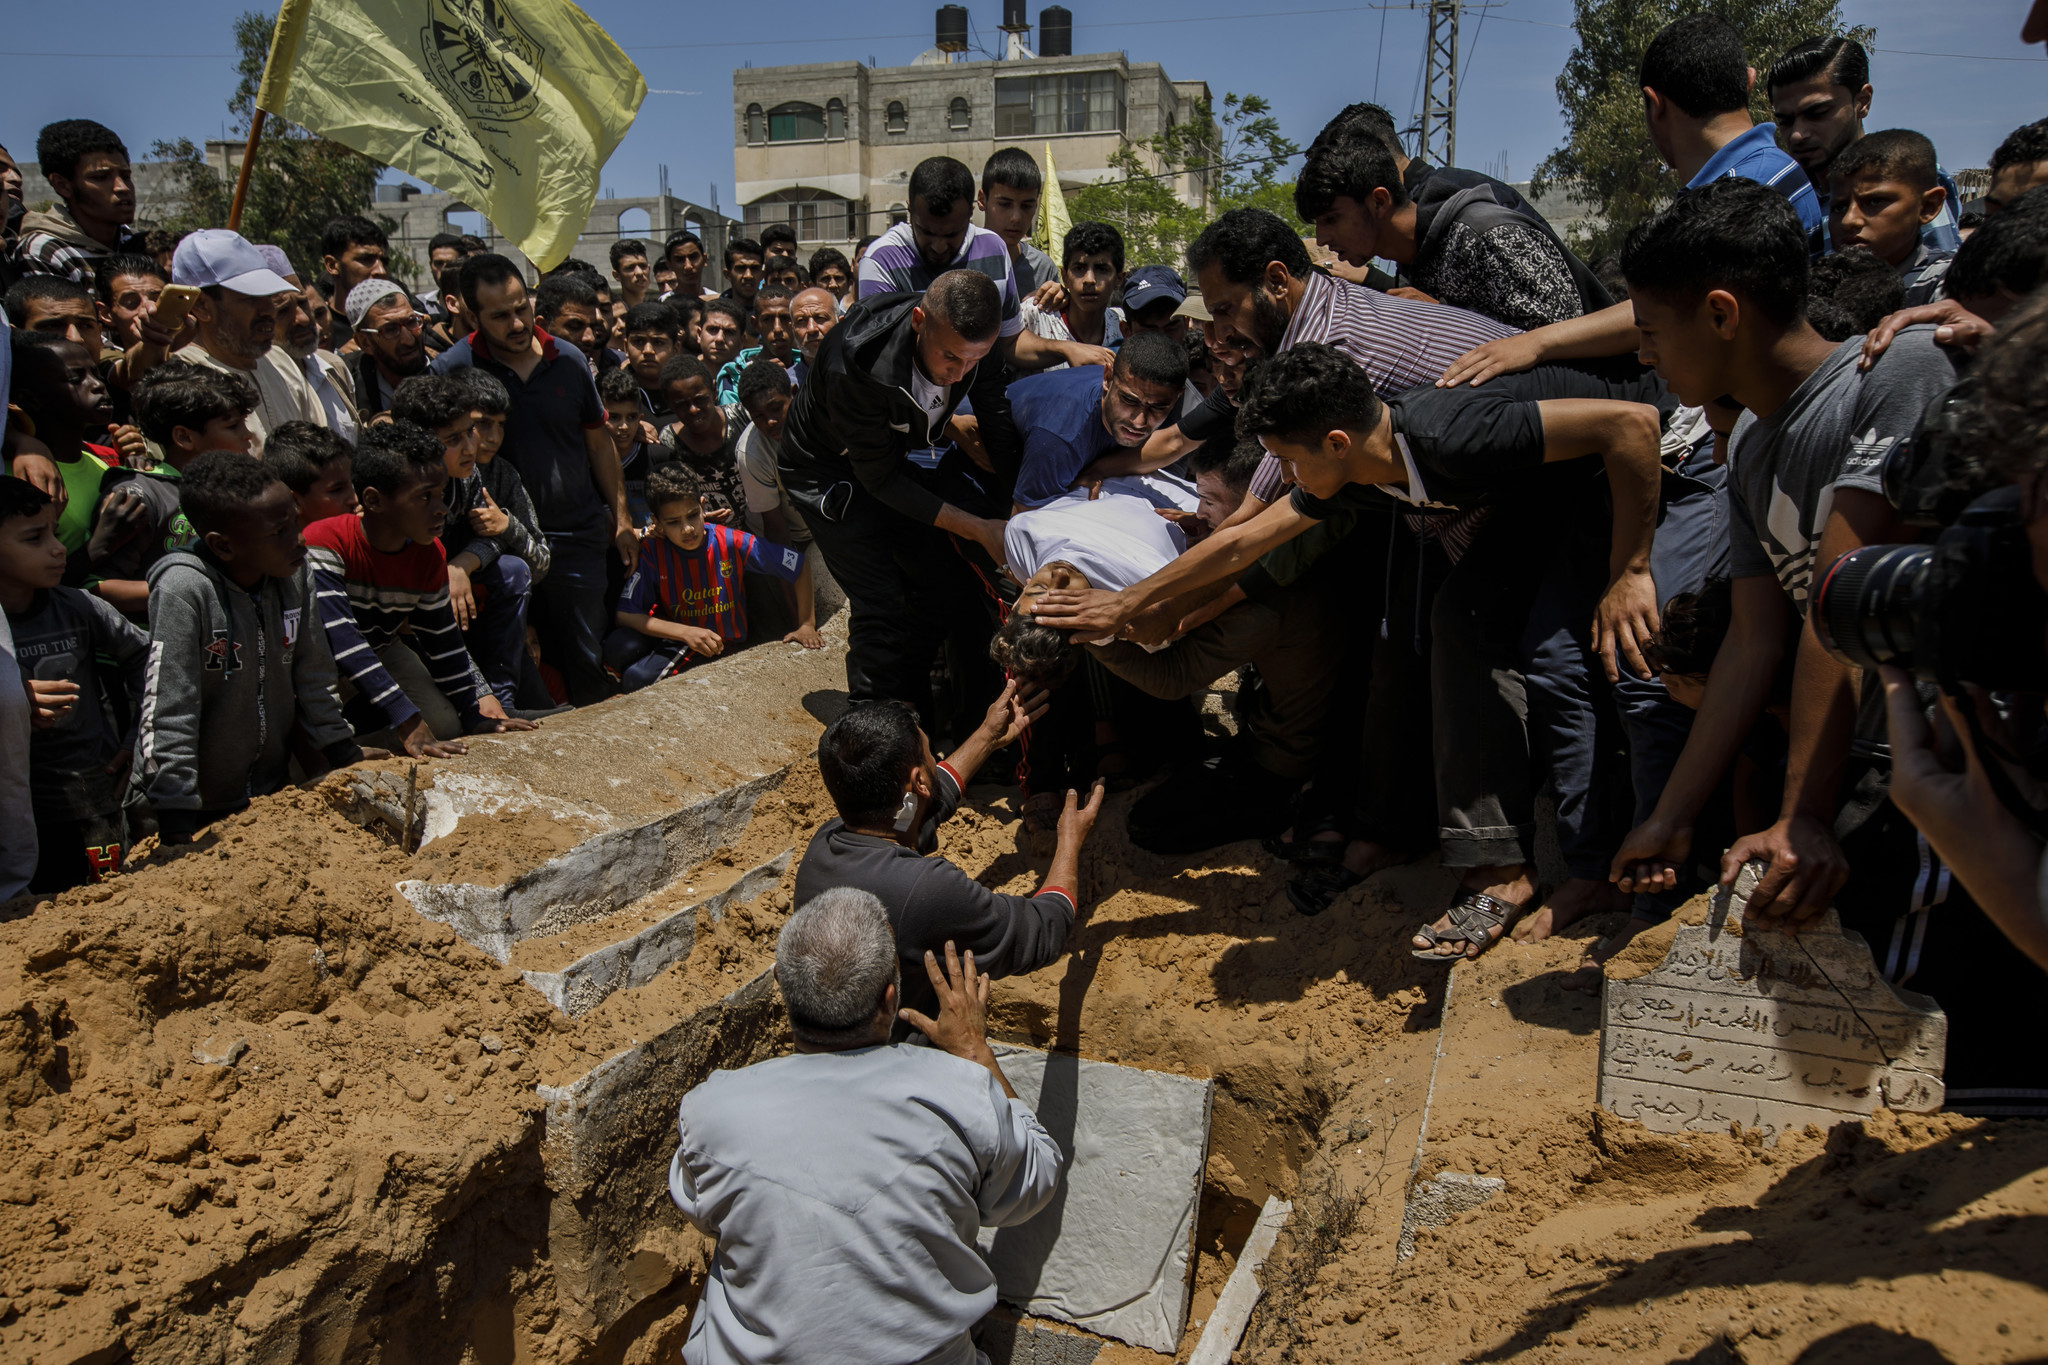 Mourners gather at a funeral service for Jamal Abdul-Rahman Affana, 15, who succumbed to his wounds sustained from last Friday's protest at the Israel-Gaza border fence in Rafah,